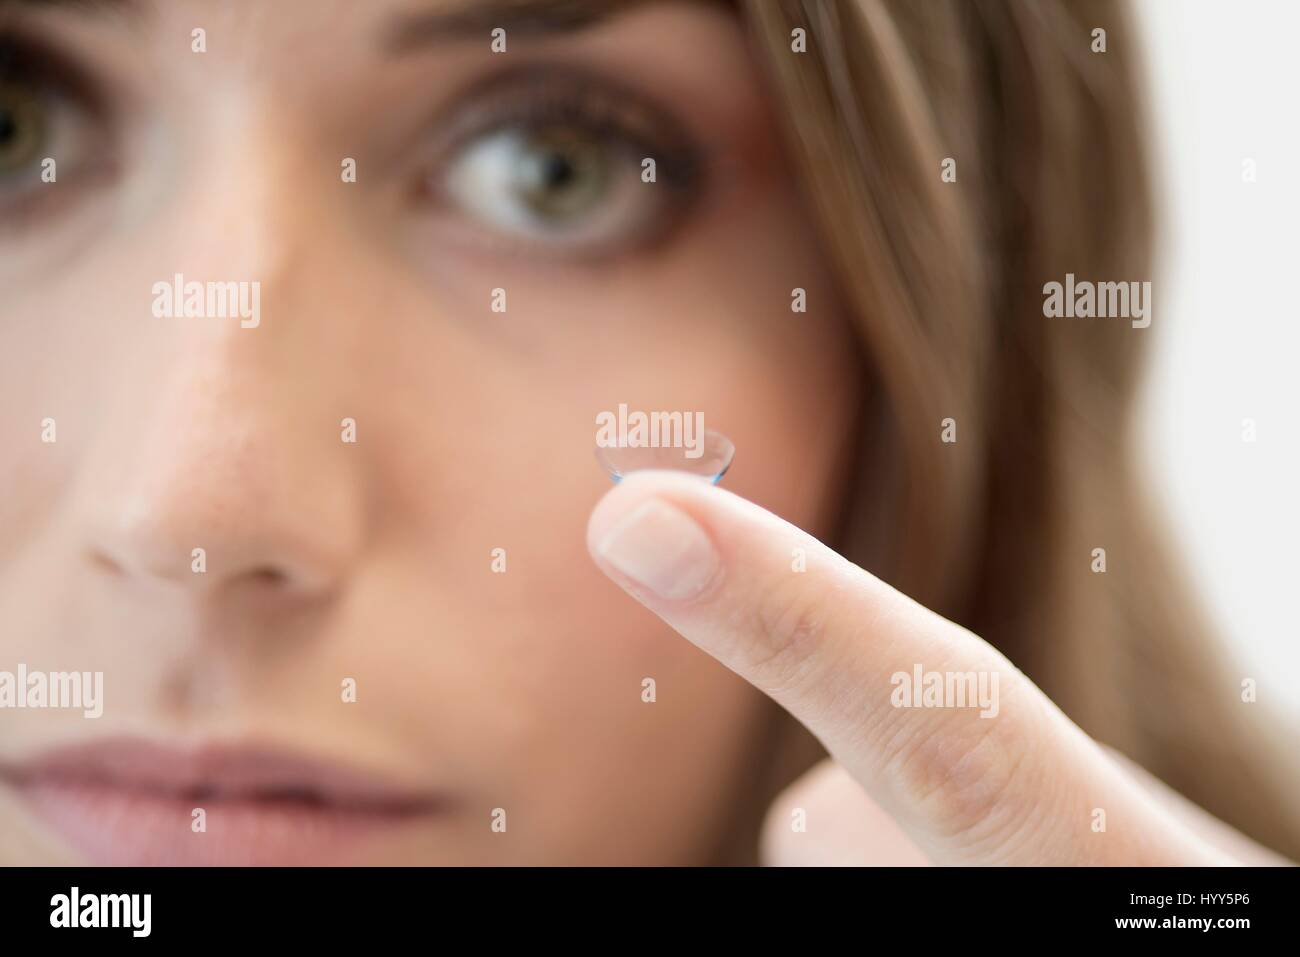 Mid adult woman with contact lens on finger. - Stock Image